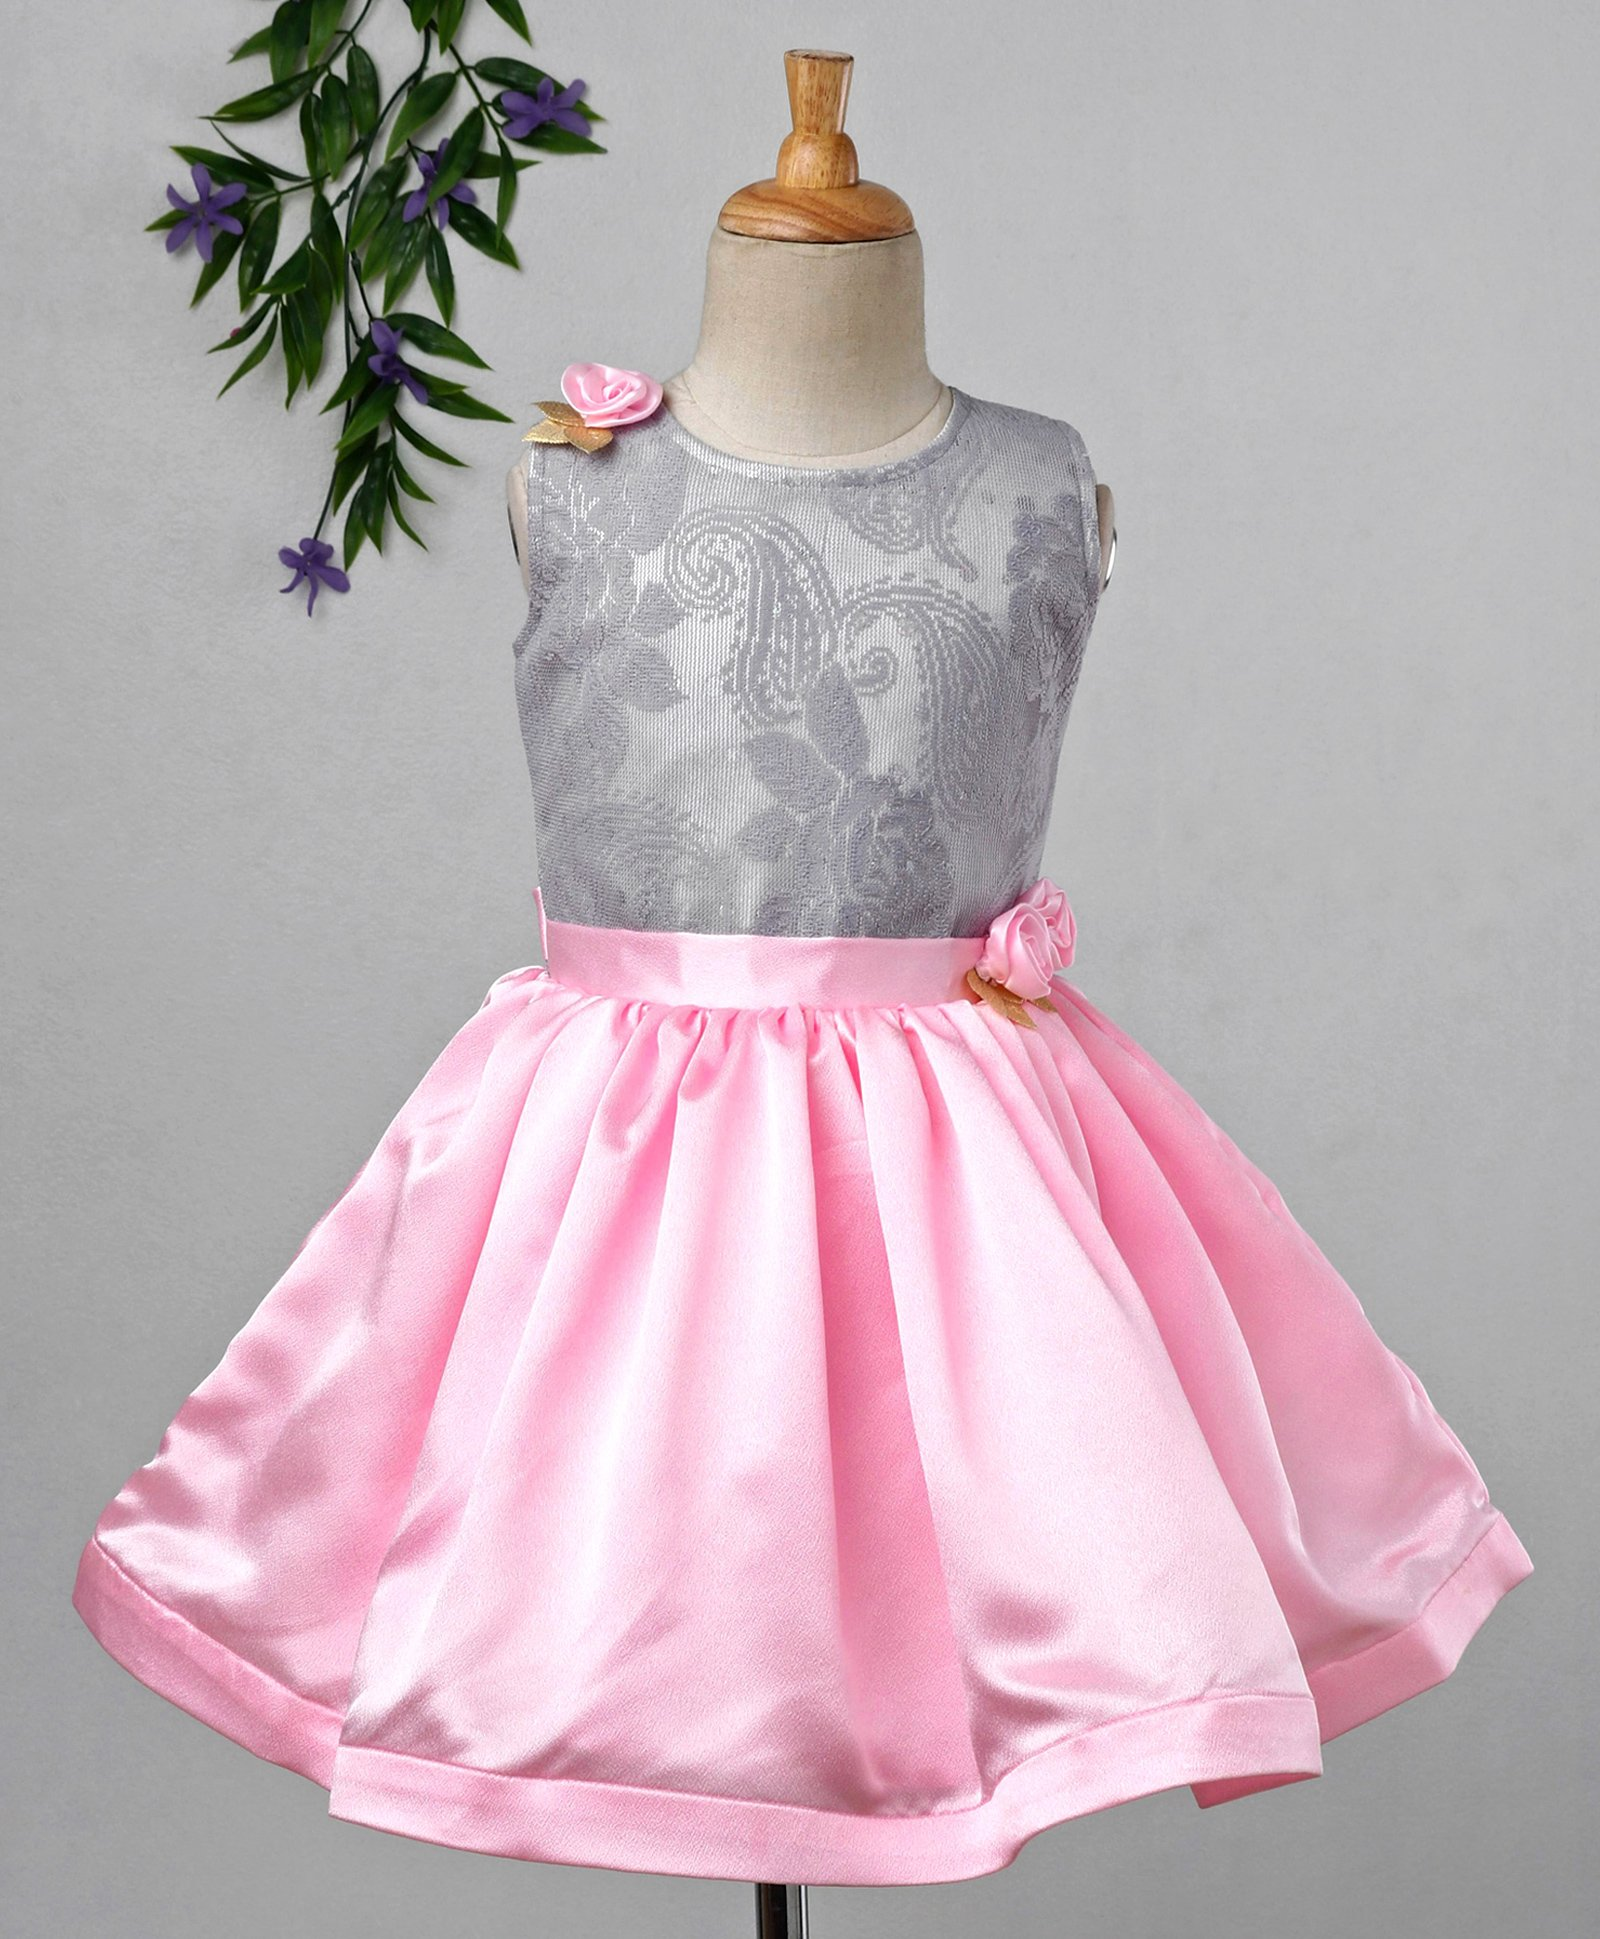 d630584d5 Buy Babyhug Sleeveless Party Wear Frock With Damask Bodice Grey ...